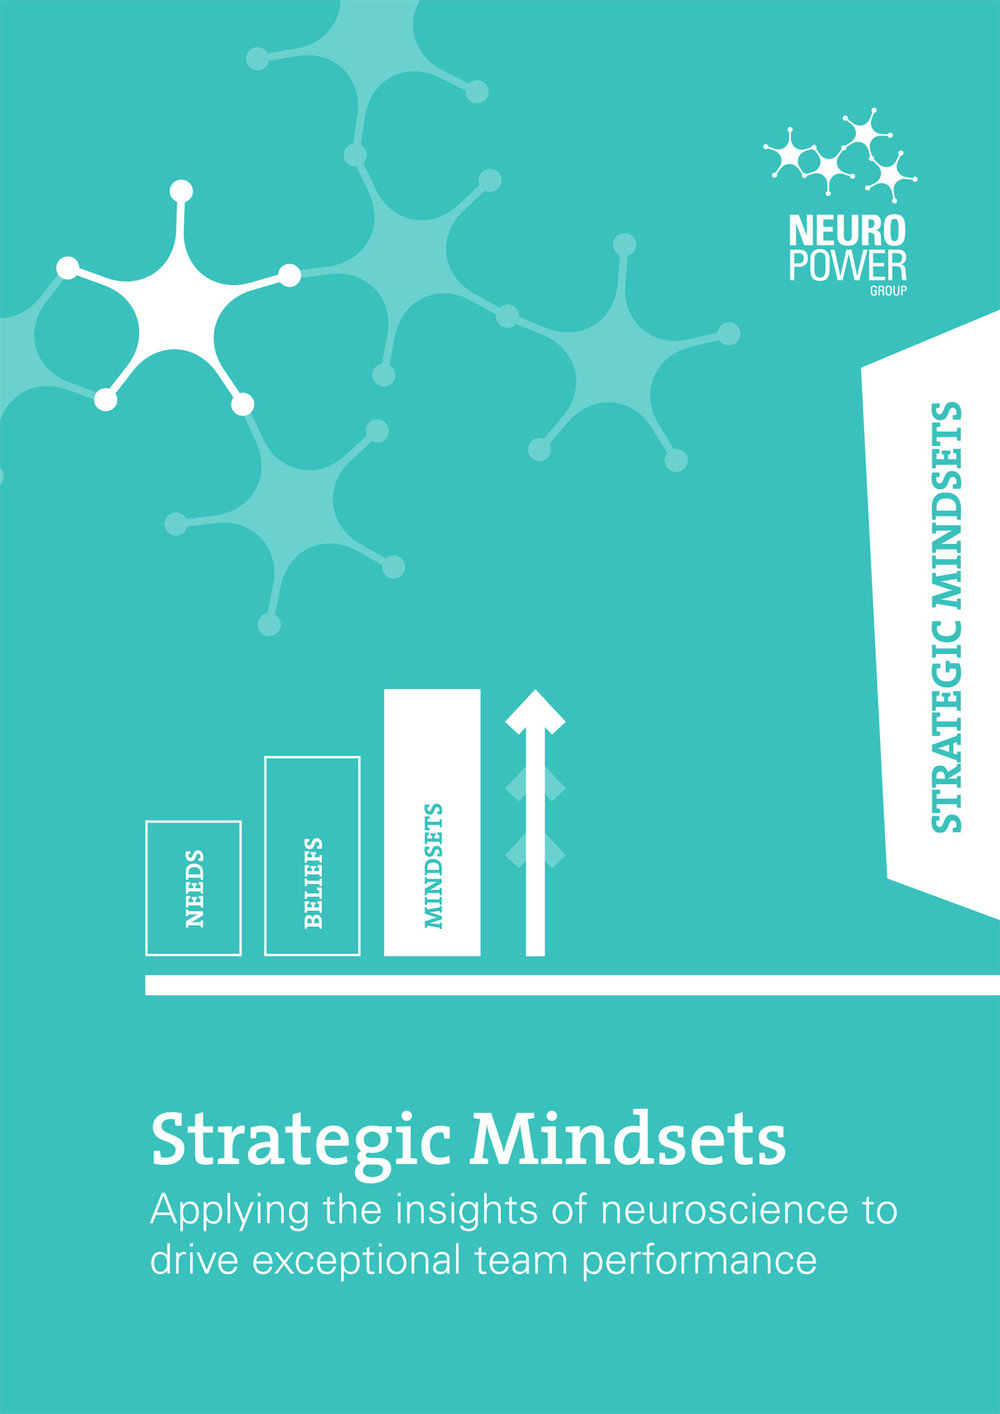 300-Strategic-Mindsets-Workbook_Oct_2015-New-Icons---no-bleed-1.jpg